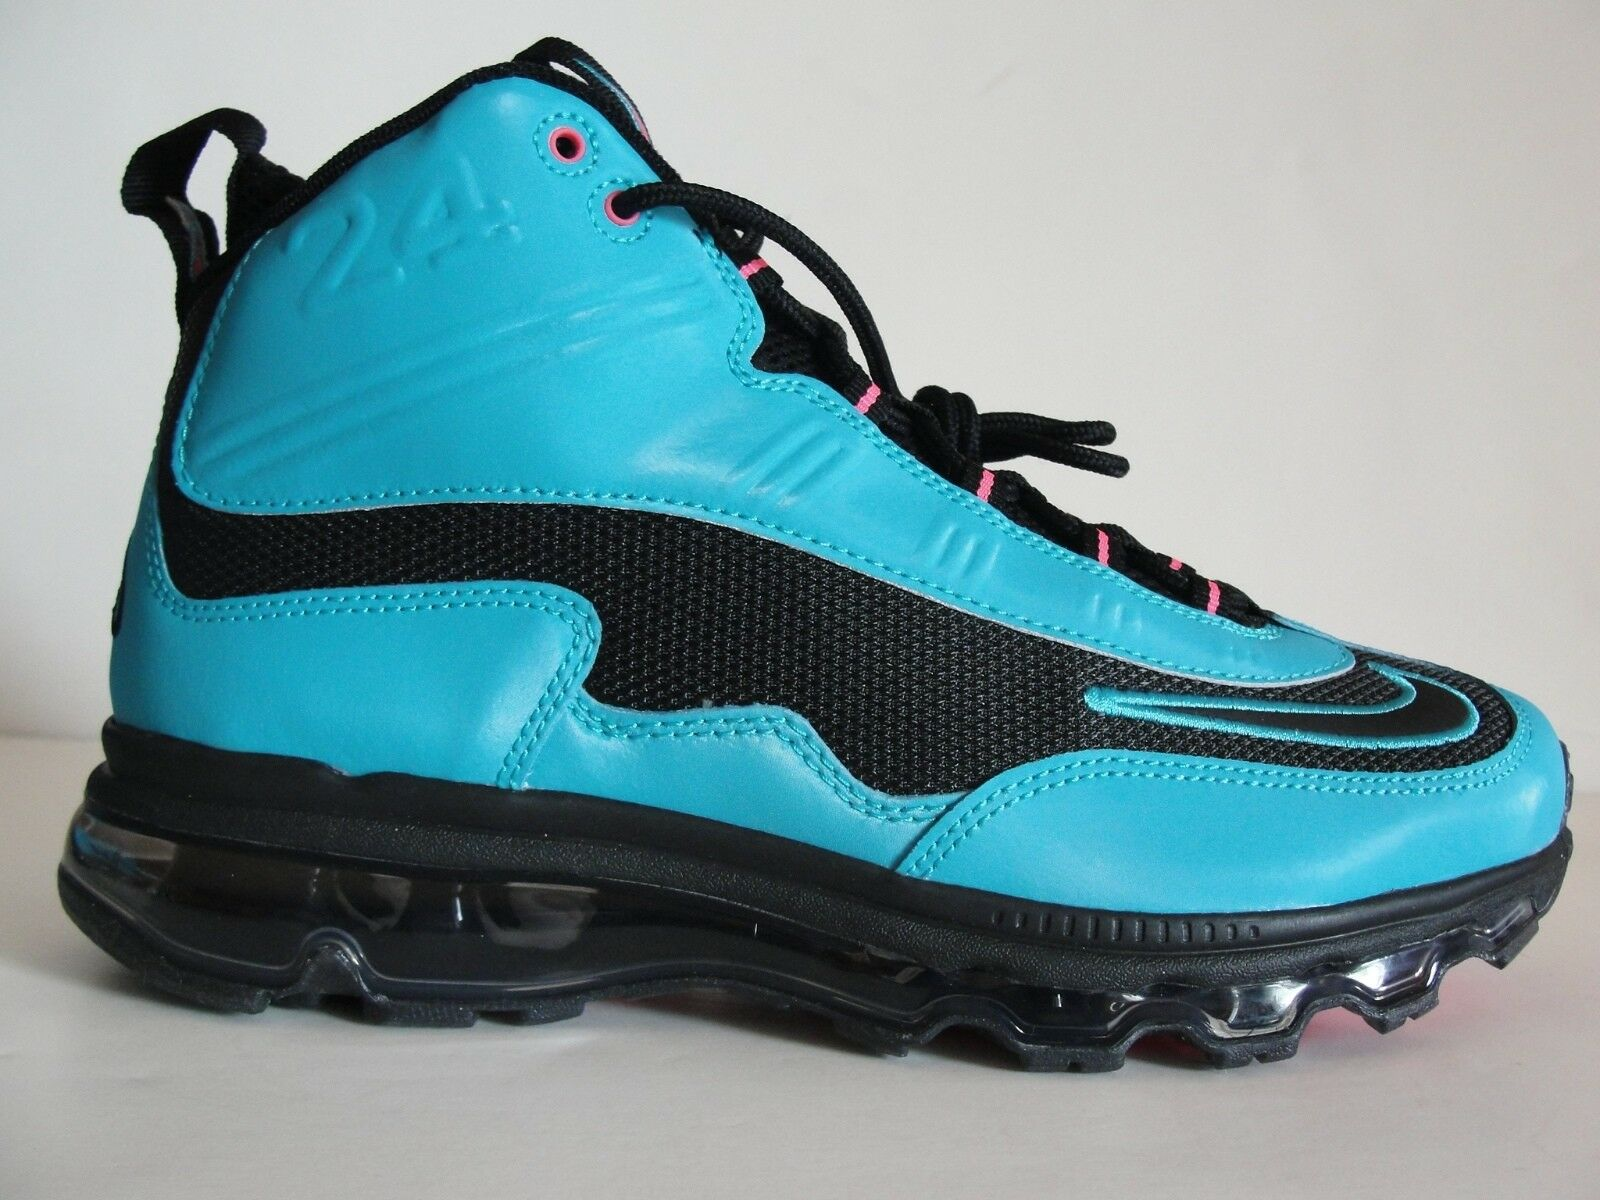 NIKE AIR MAX   KEN GRIFFEY TURQUOISE TURQUOISE TURQUOISE BASKETBALL WOMEN SHOES SIZE 8 YOUNG 7Y 41ea99